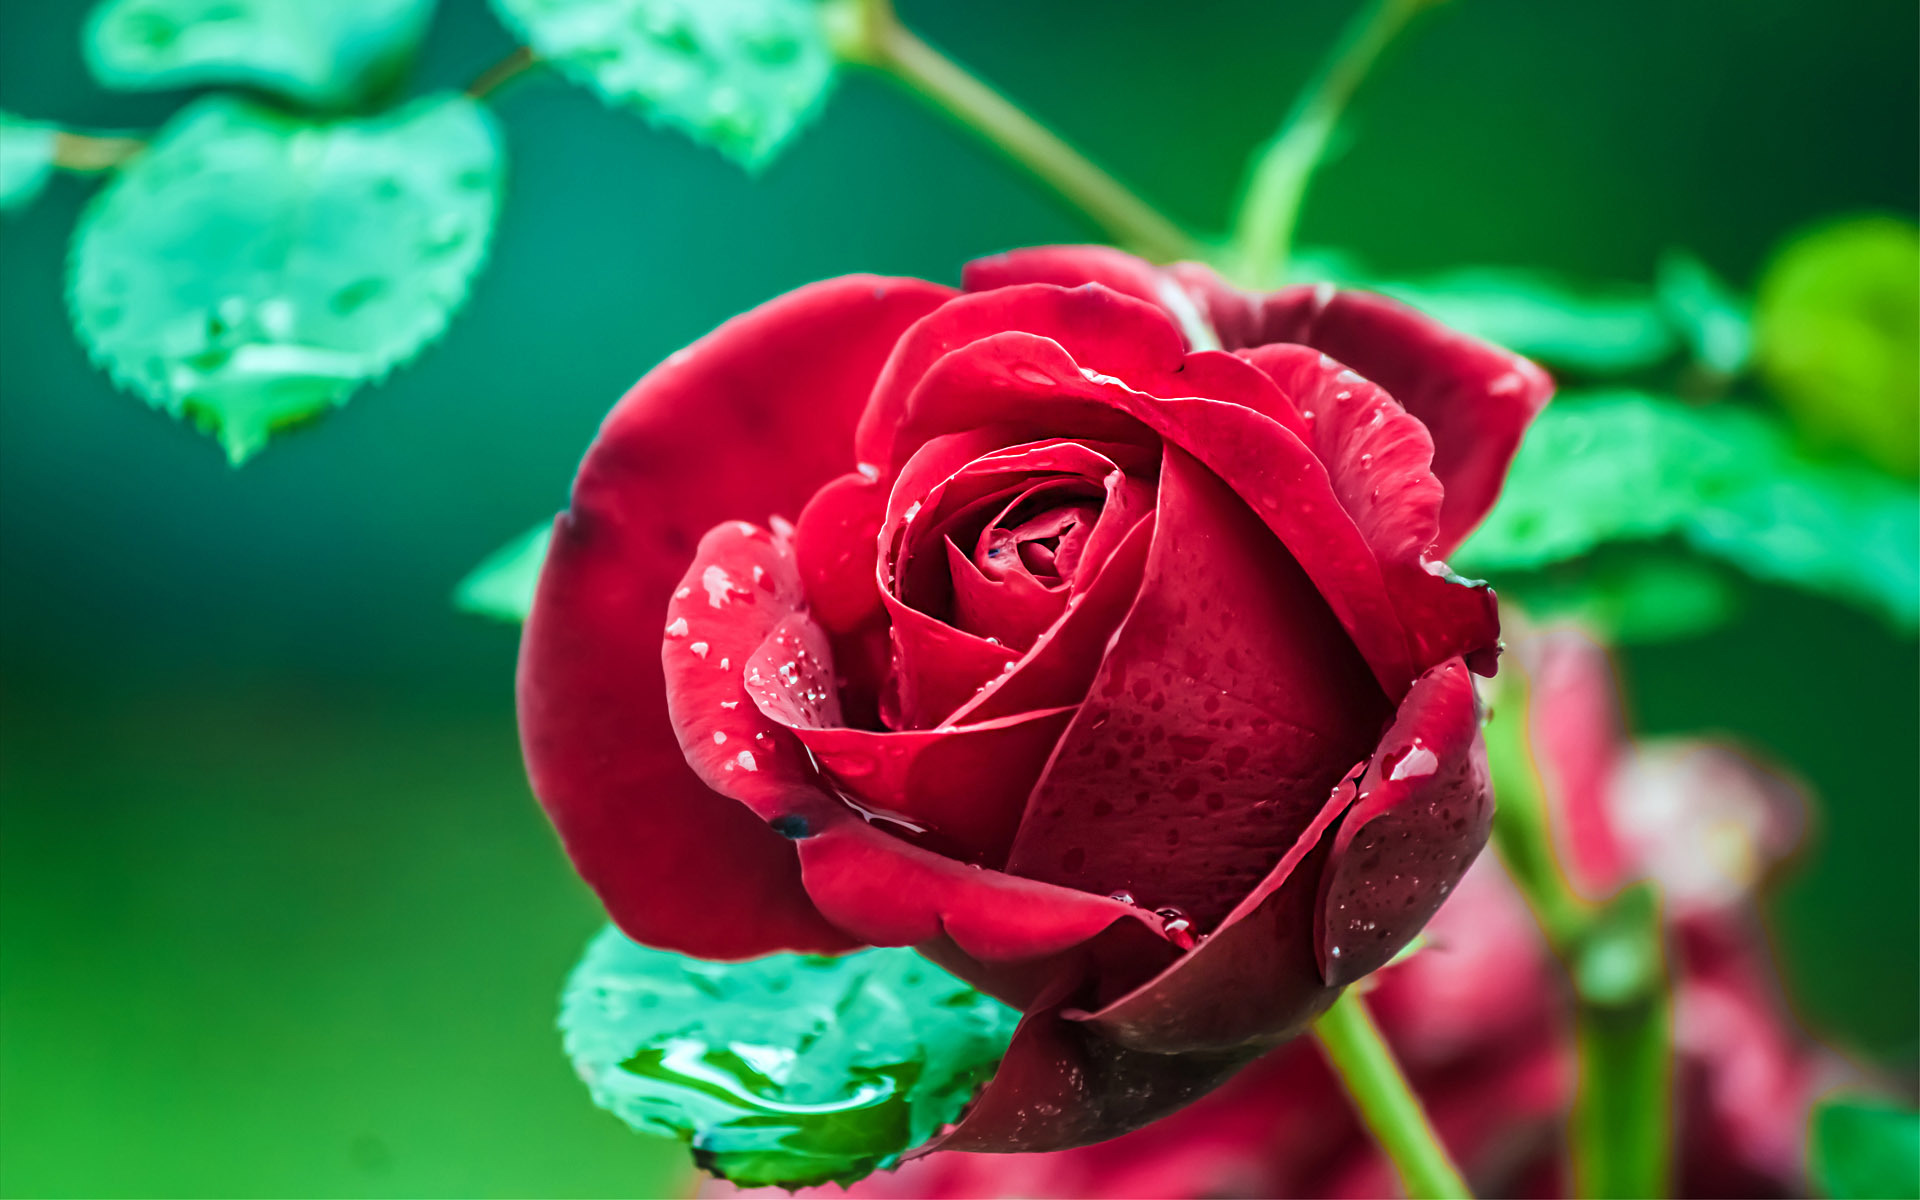 Beautiful Red Rose With Raindrops In The Garden Wallpaper Download 1920x1200